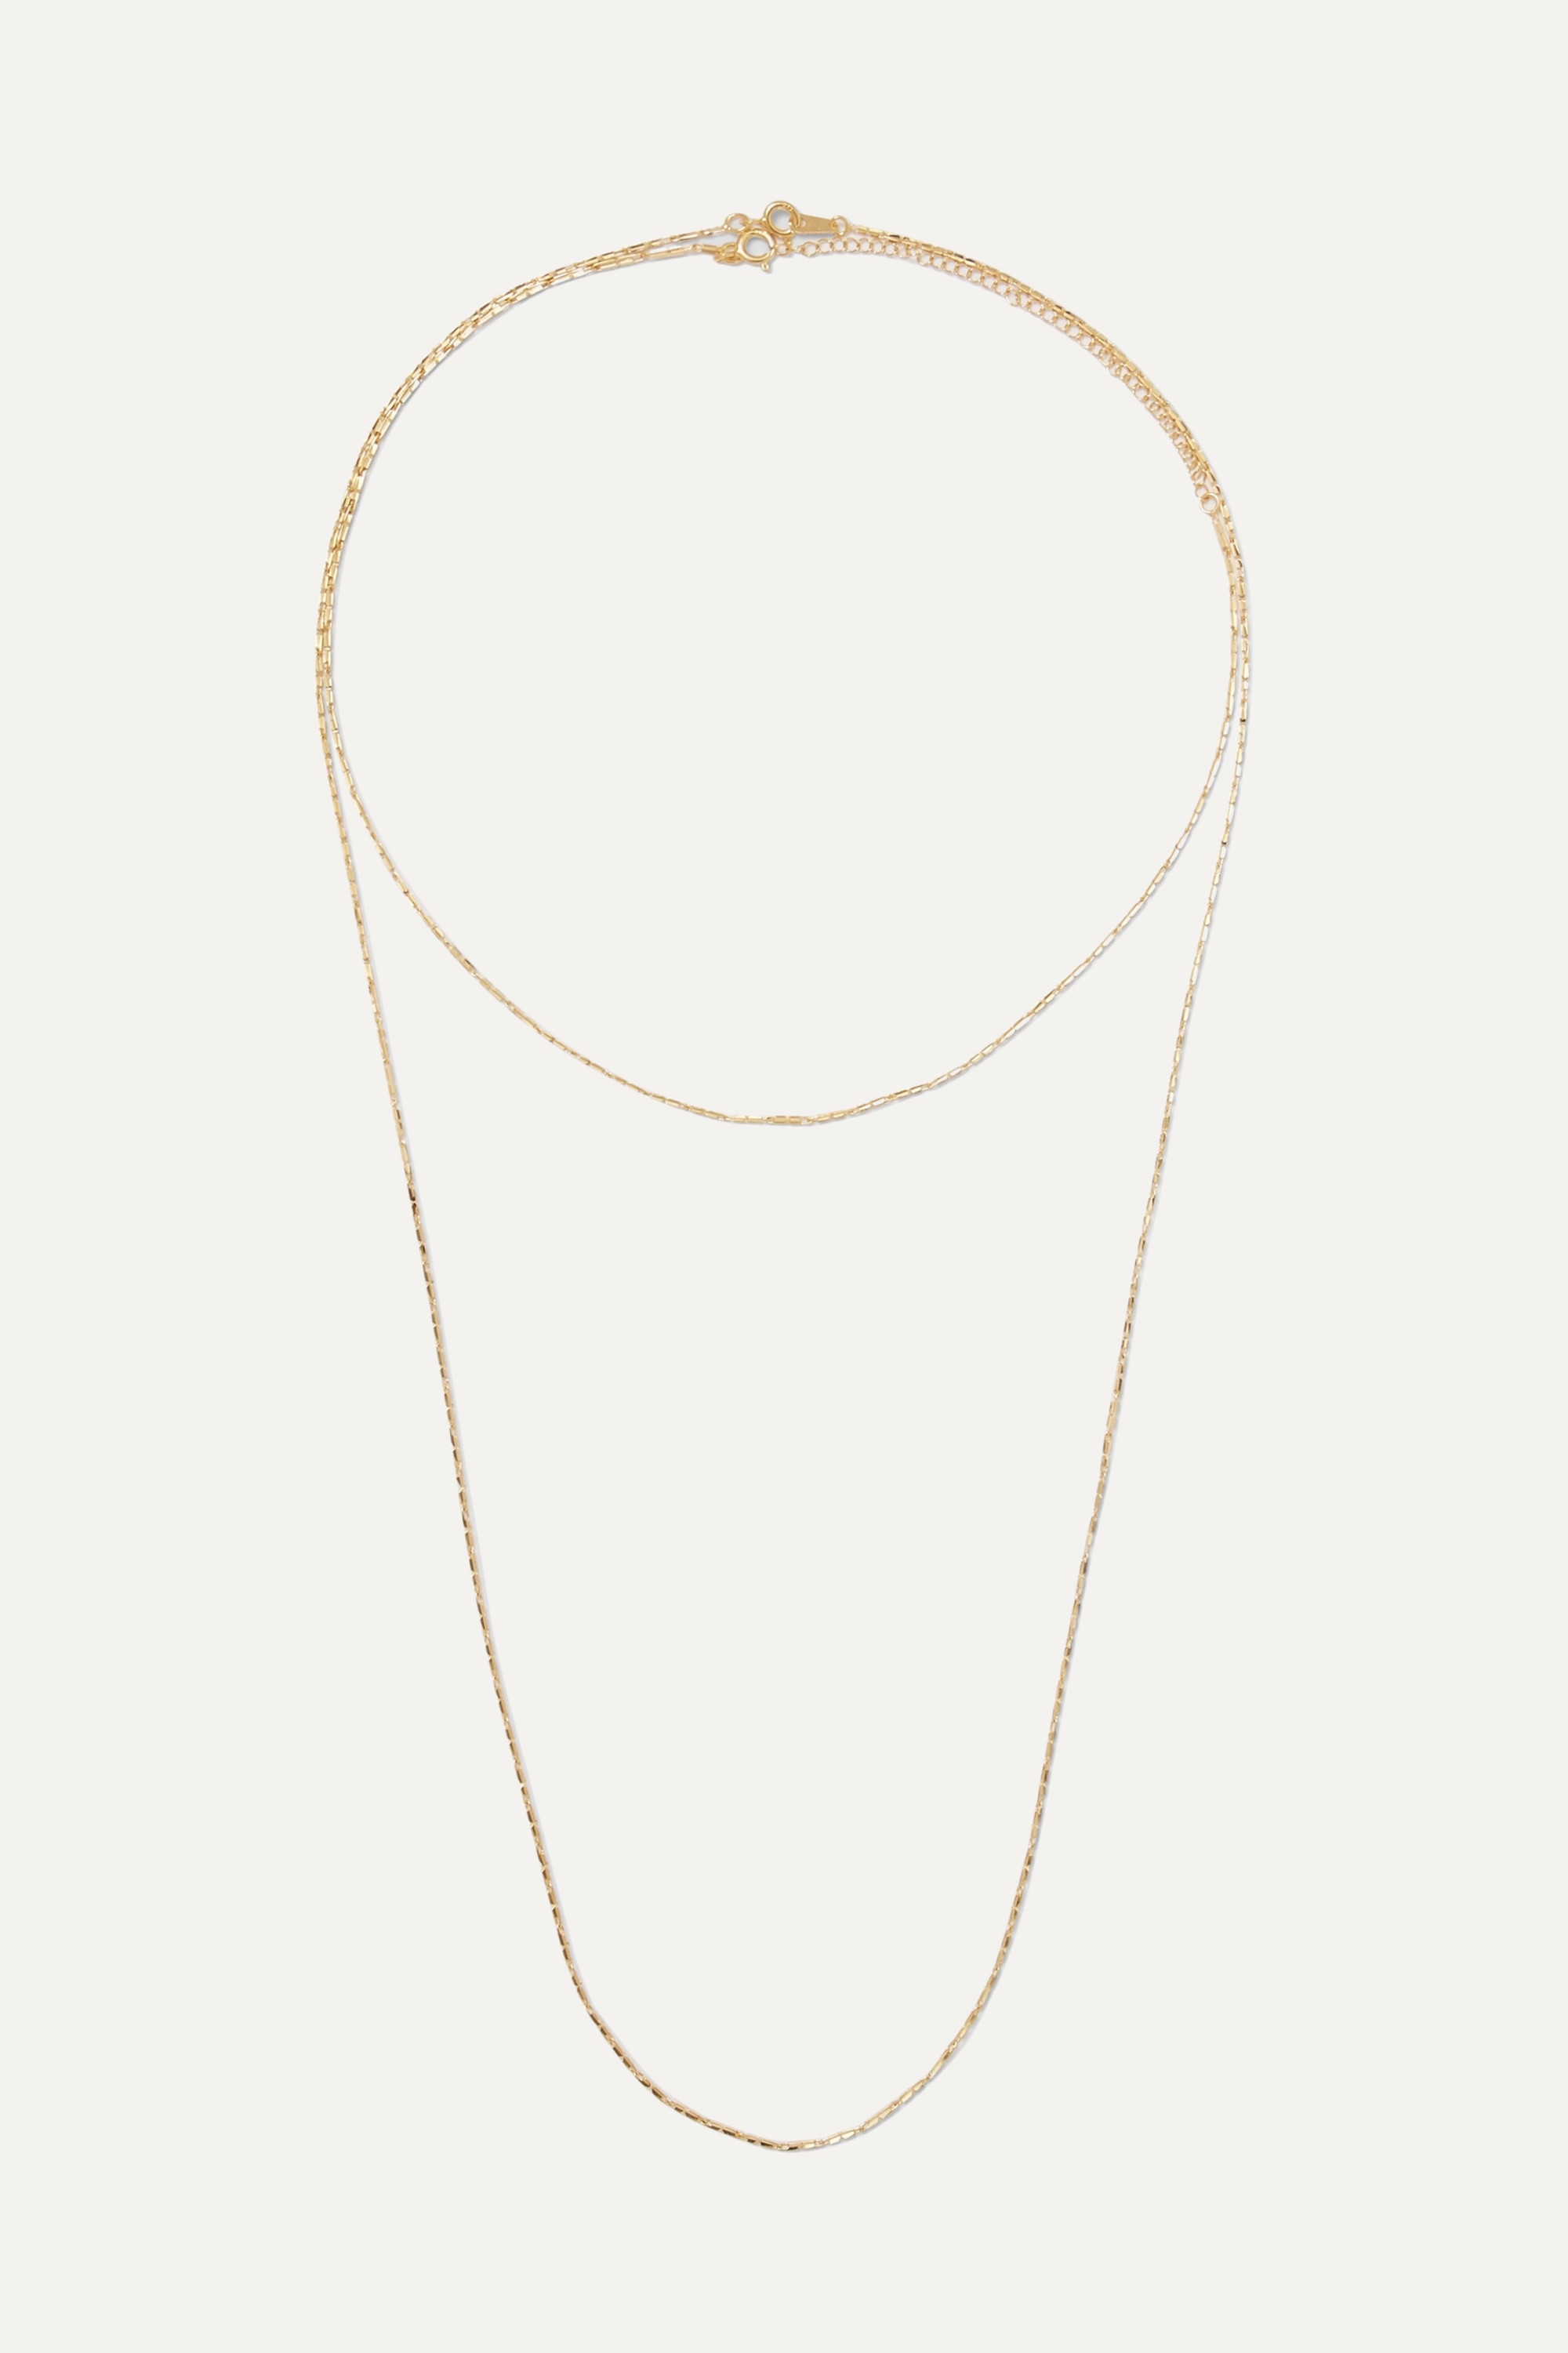 1064 Studio Colors of Shadow set of two gold-plated necklaces